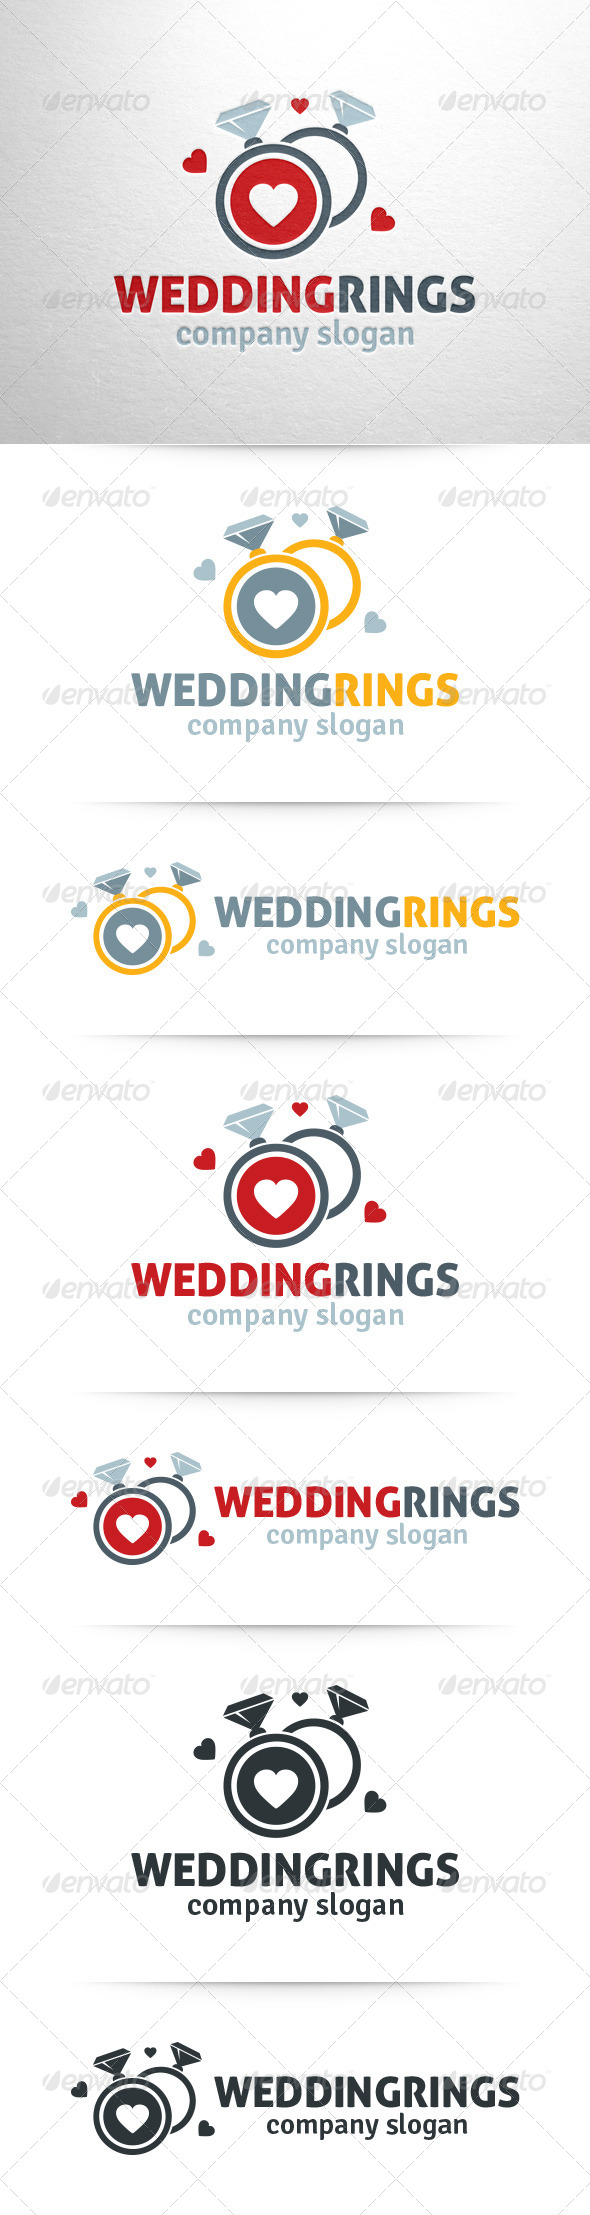 GraphicRiver Wedding Rings Logo Template 7460500